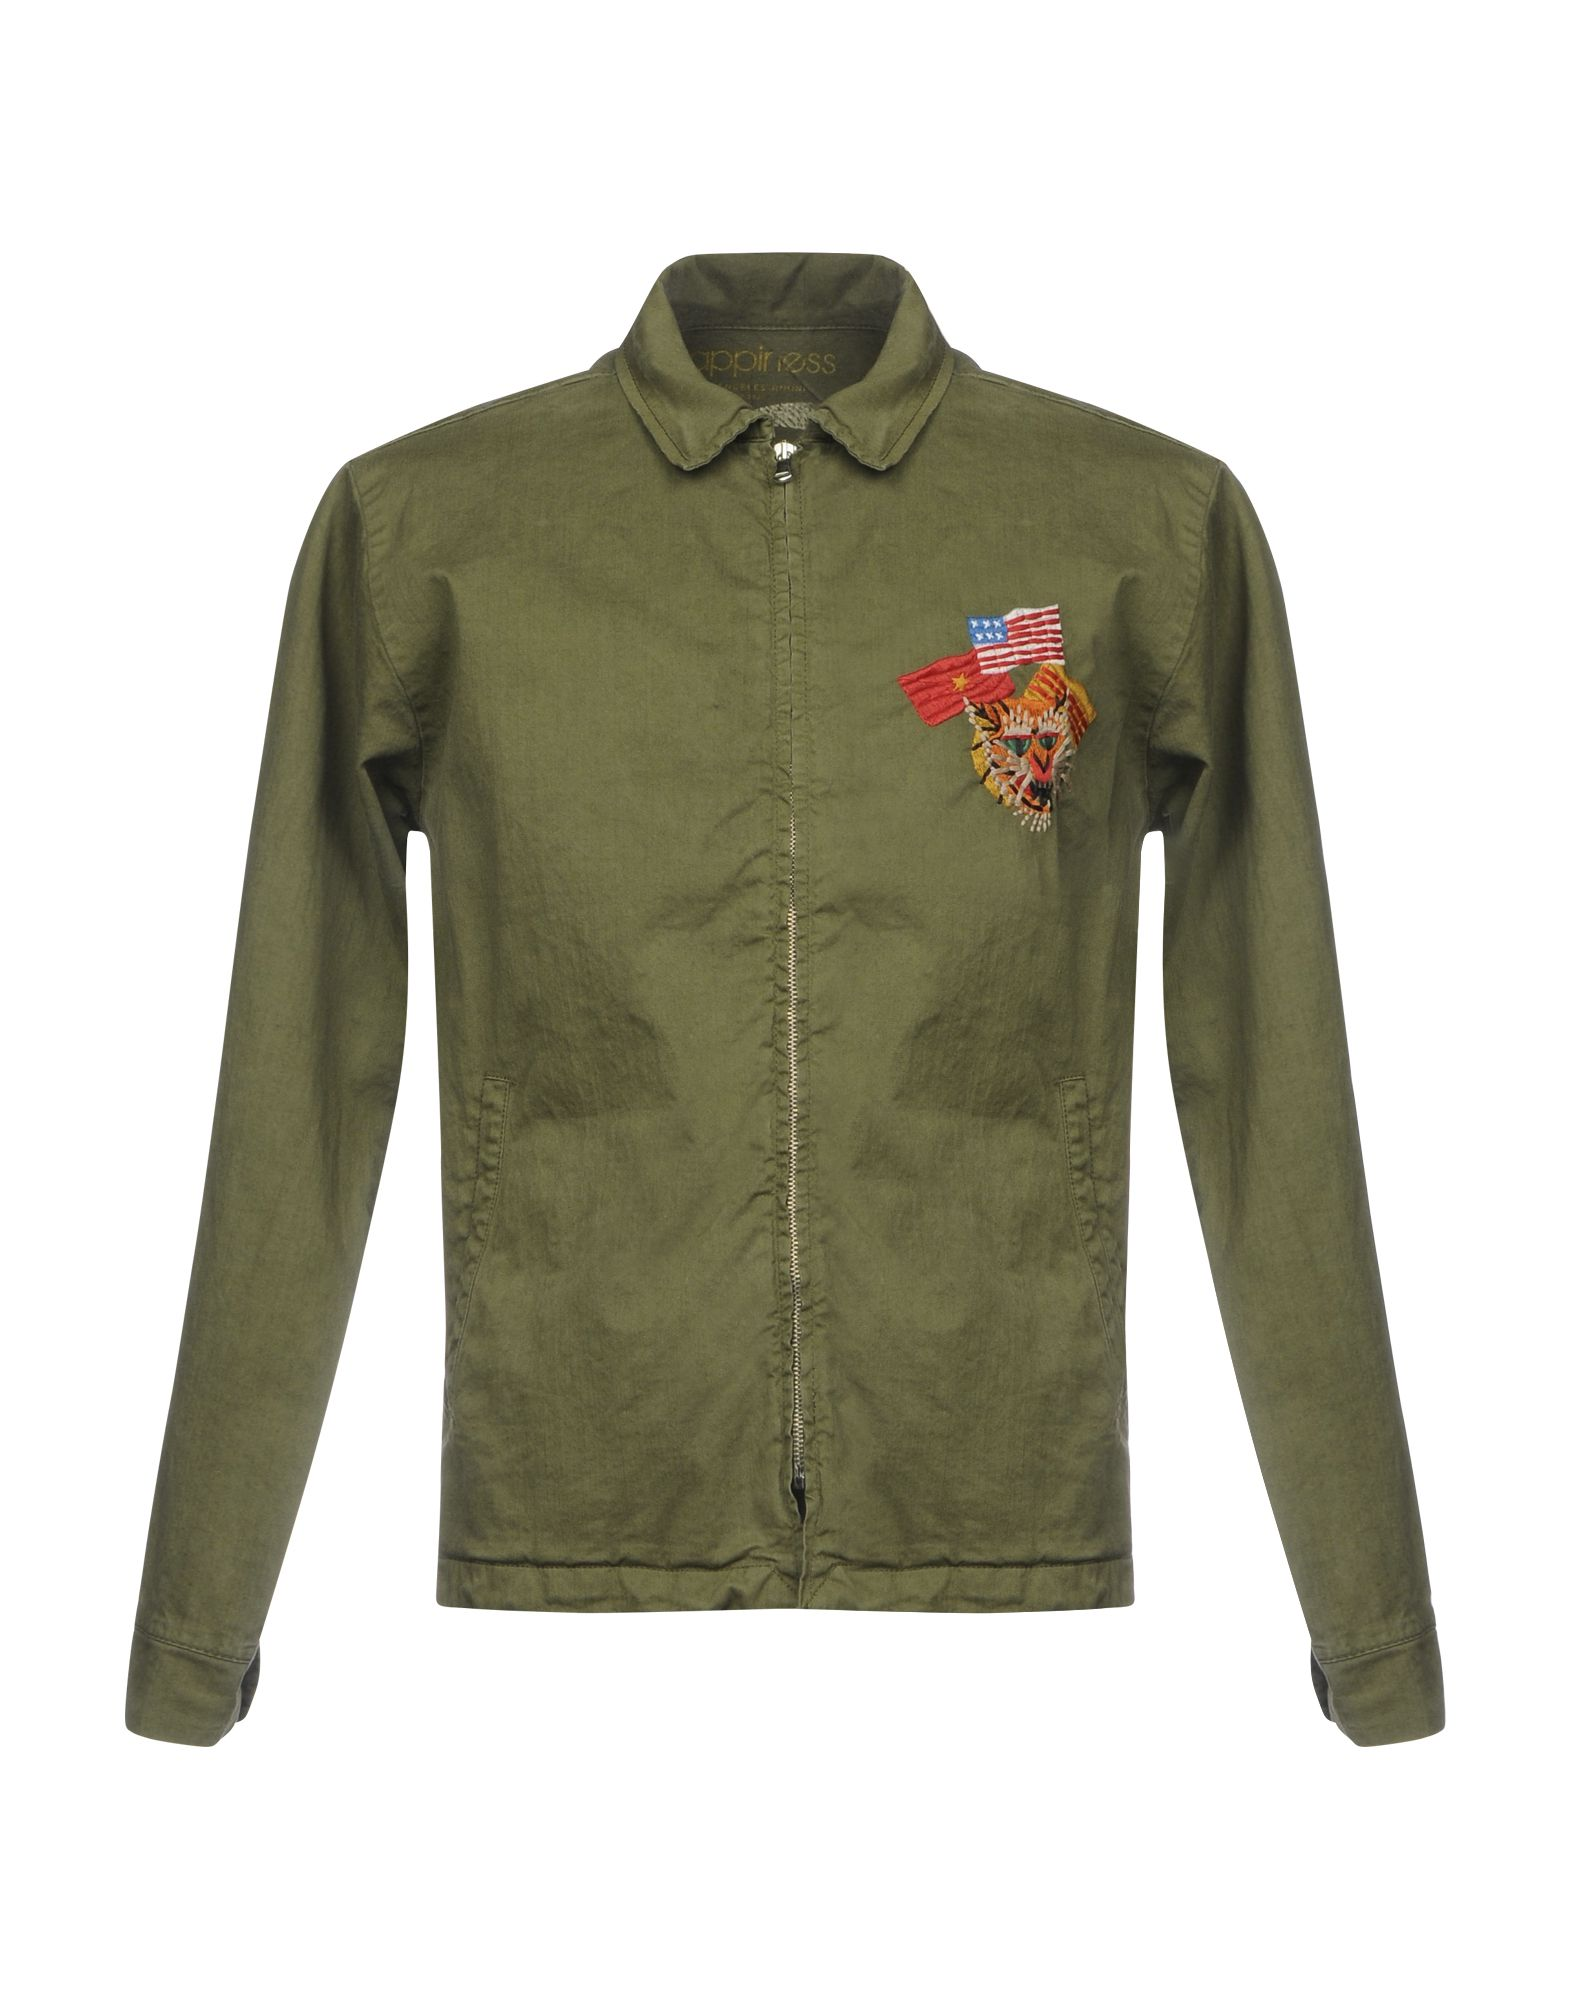 HAPPINESS Jackets in Military Green